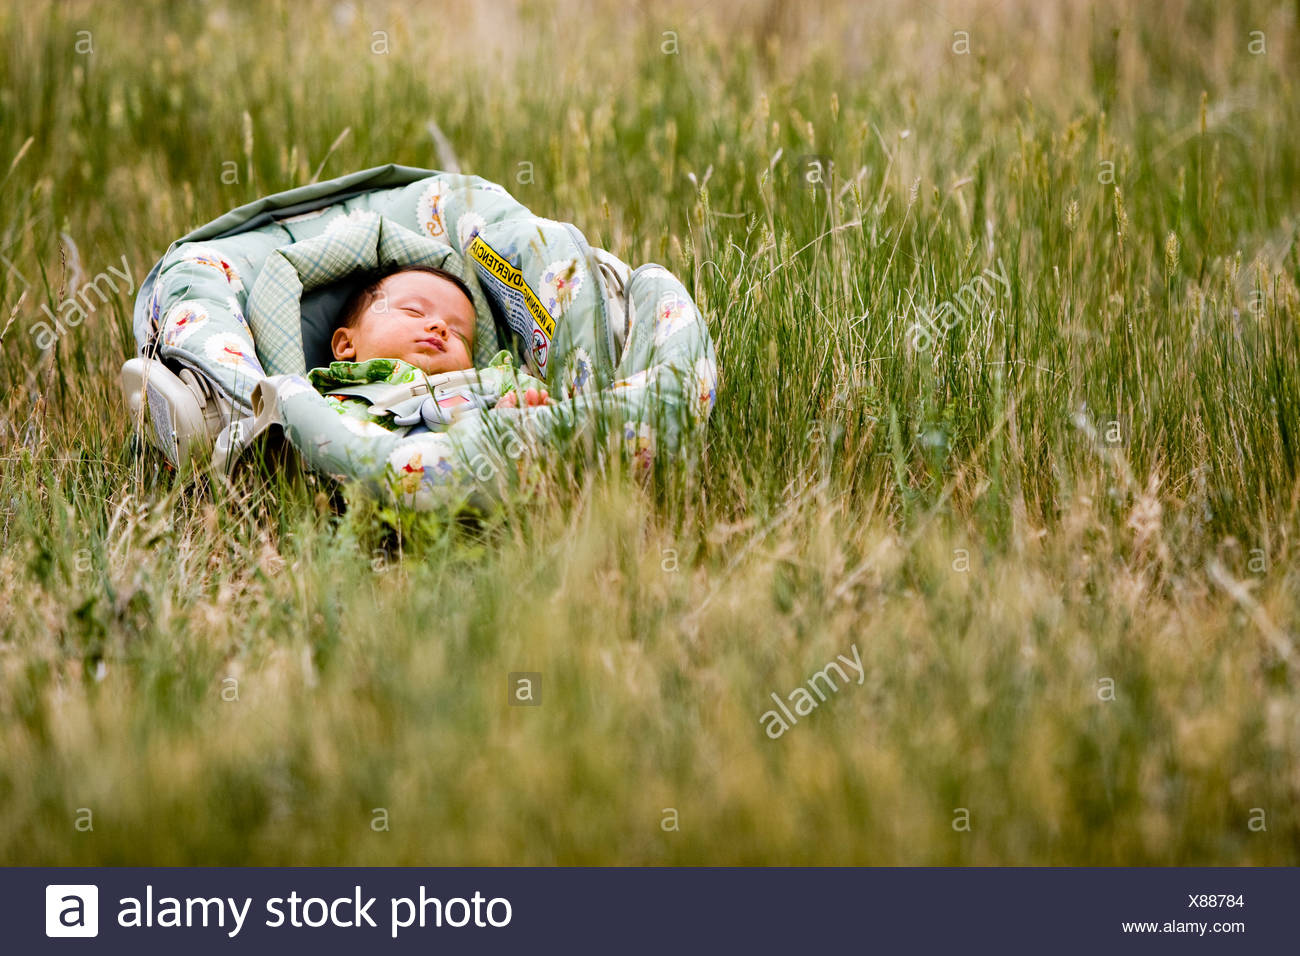 A baby sleeps in a car seat in the middle of a grassy field in Colorado. - Stock Image